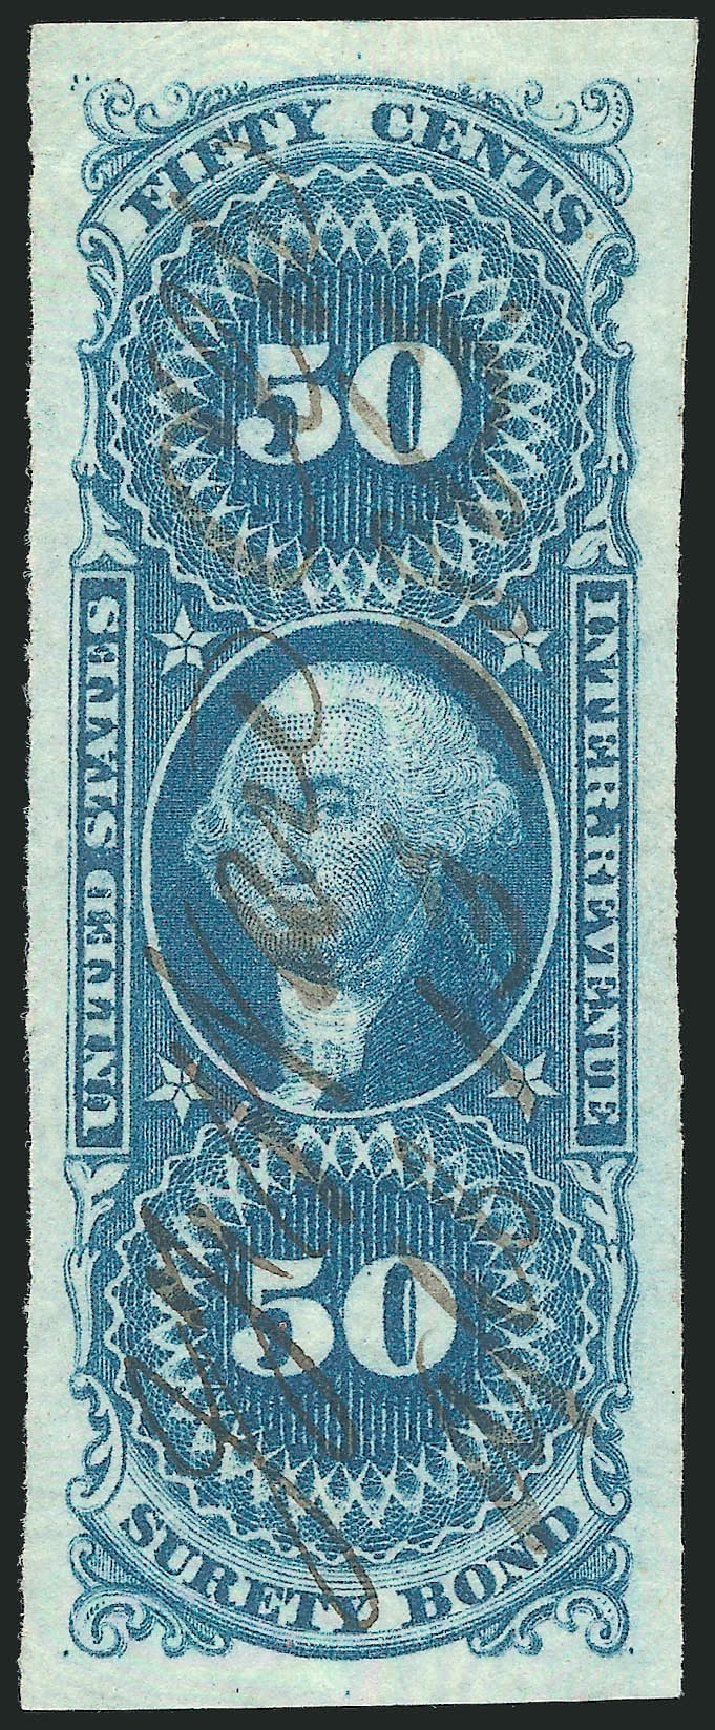 US Stamp Price Scott Cat. # R63 - 50c 1862 Revenue Surety Bond. Robert Siegel Auction Galleries, Mar 2014, Sale 1067, Lot 531